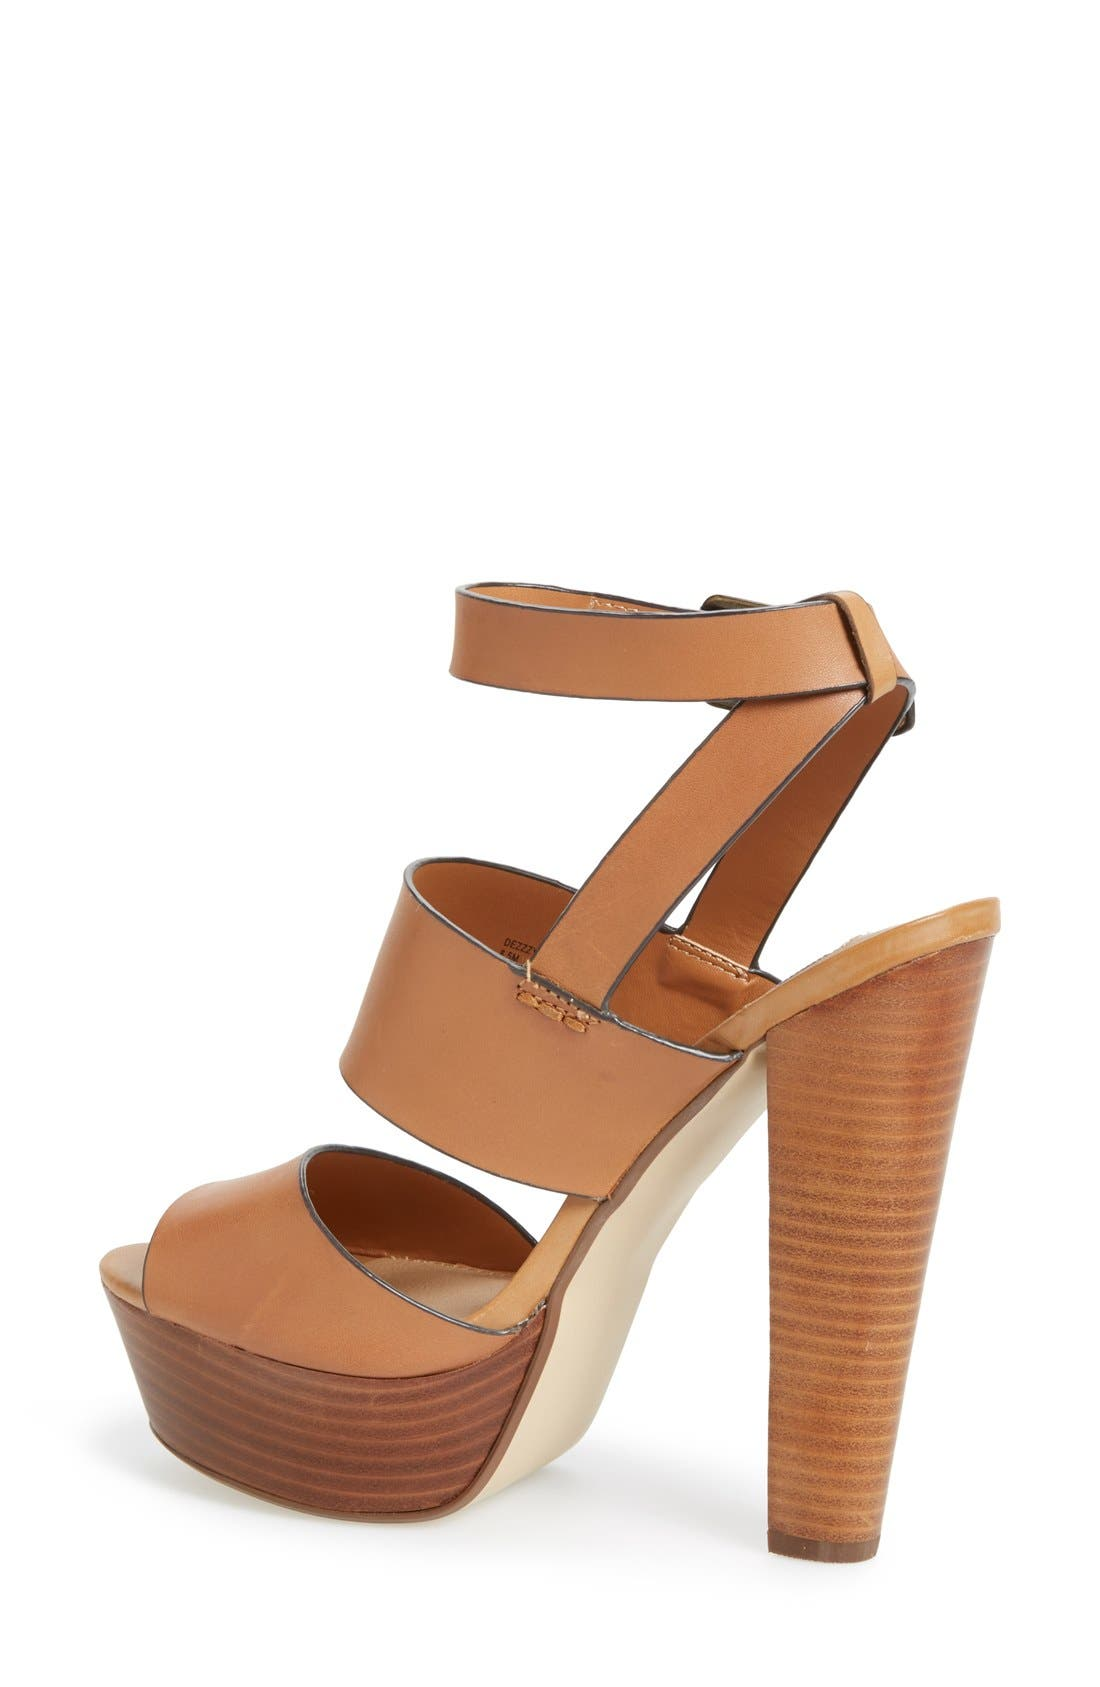 Alternate Image 2  - Steve Madden 'Dezzzy' Leather Ankle Strap Sandal (Women)